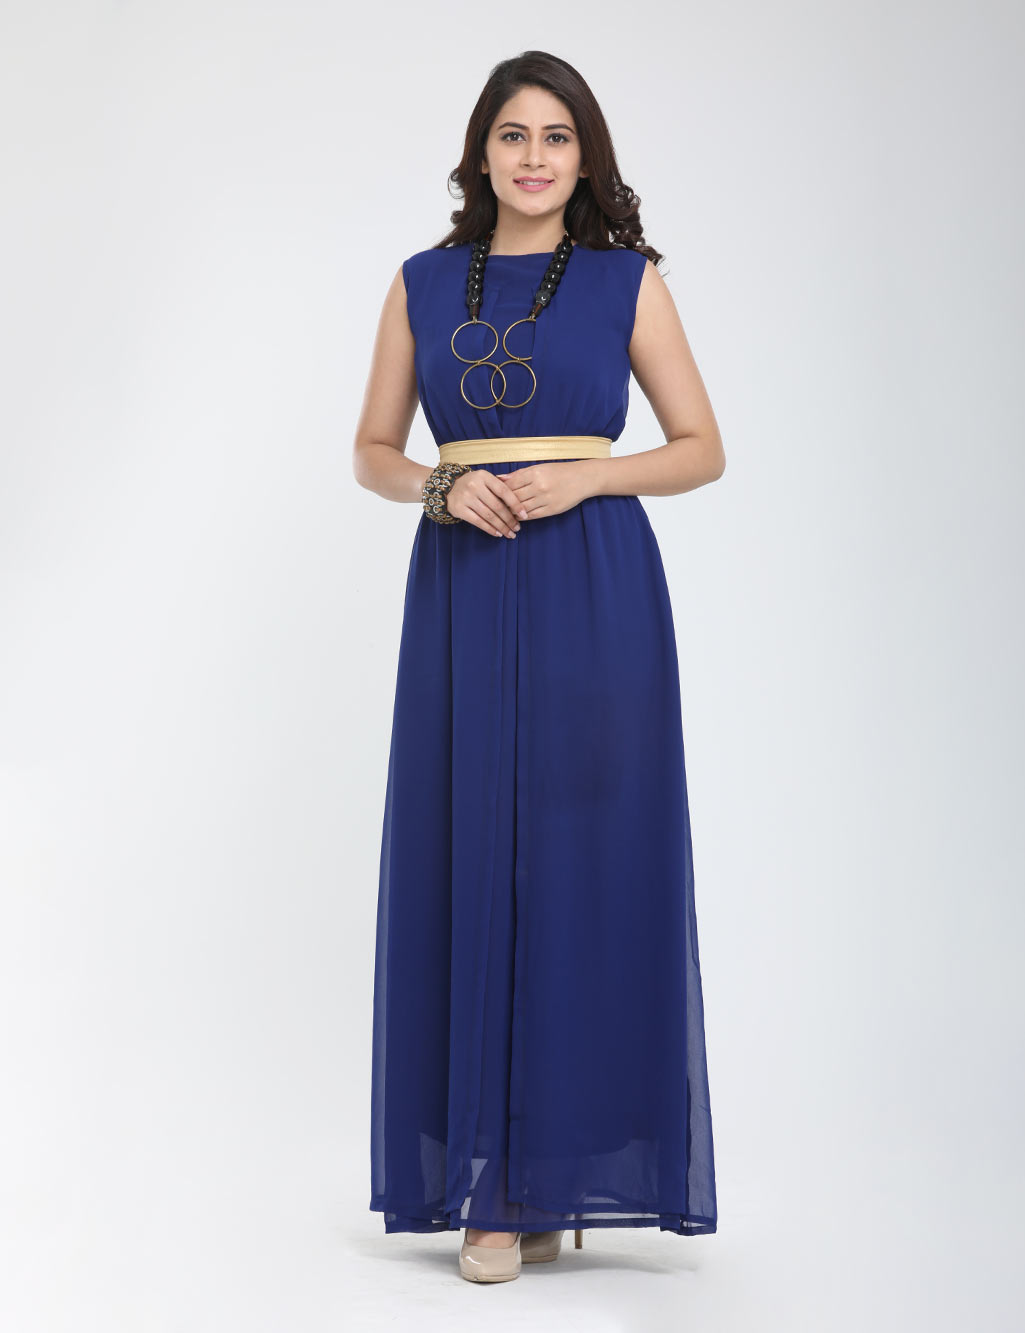 7536b82c64e912 Pick Any 1 Maxi Dress + Belt by Ishin - Buy Online at Best Prices |  Ezmall.com